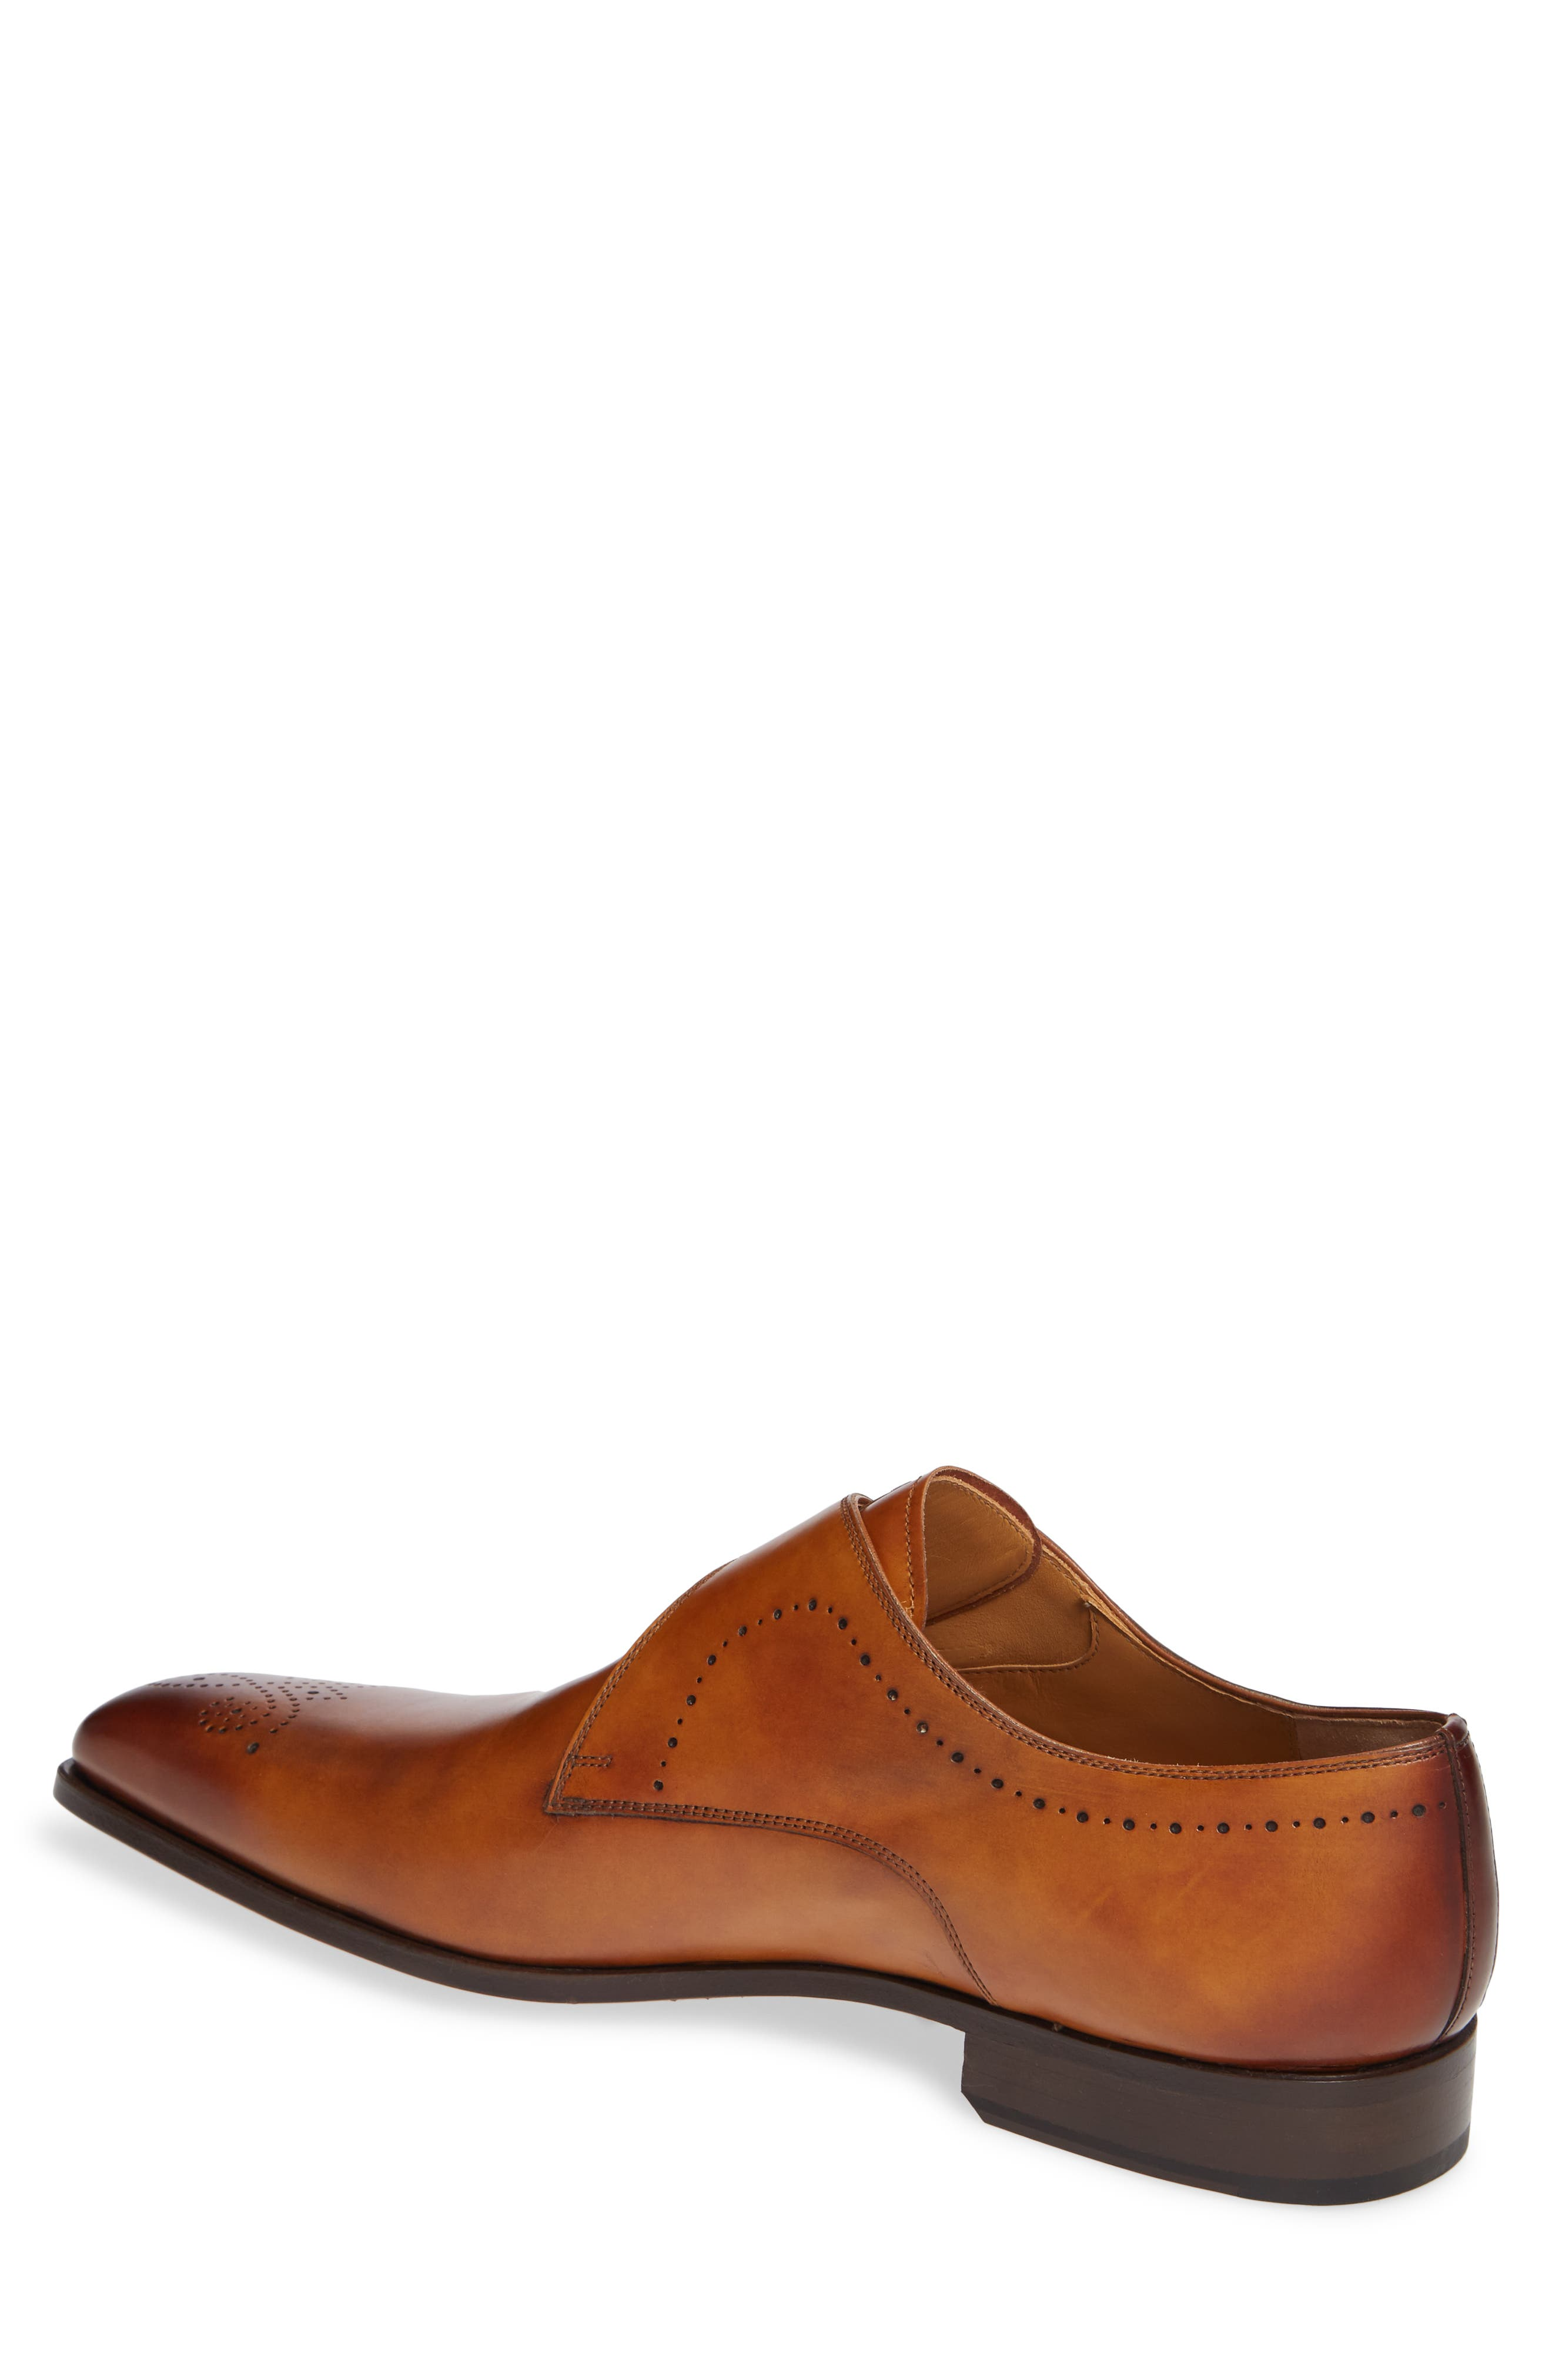 Geruasi Monk Strap Shoe,                             Alternate thumbnail 2, color,                             230